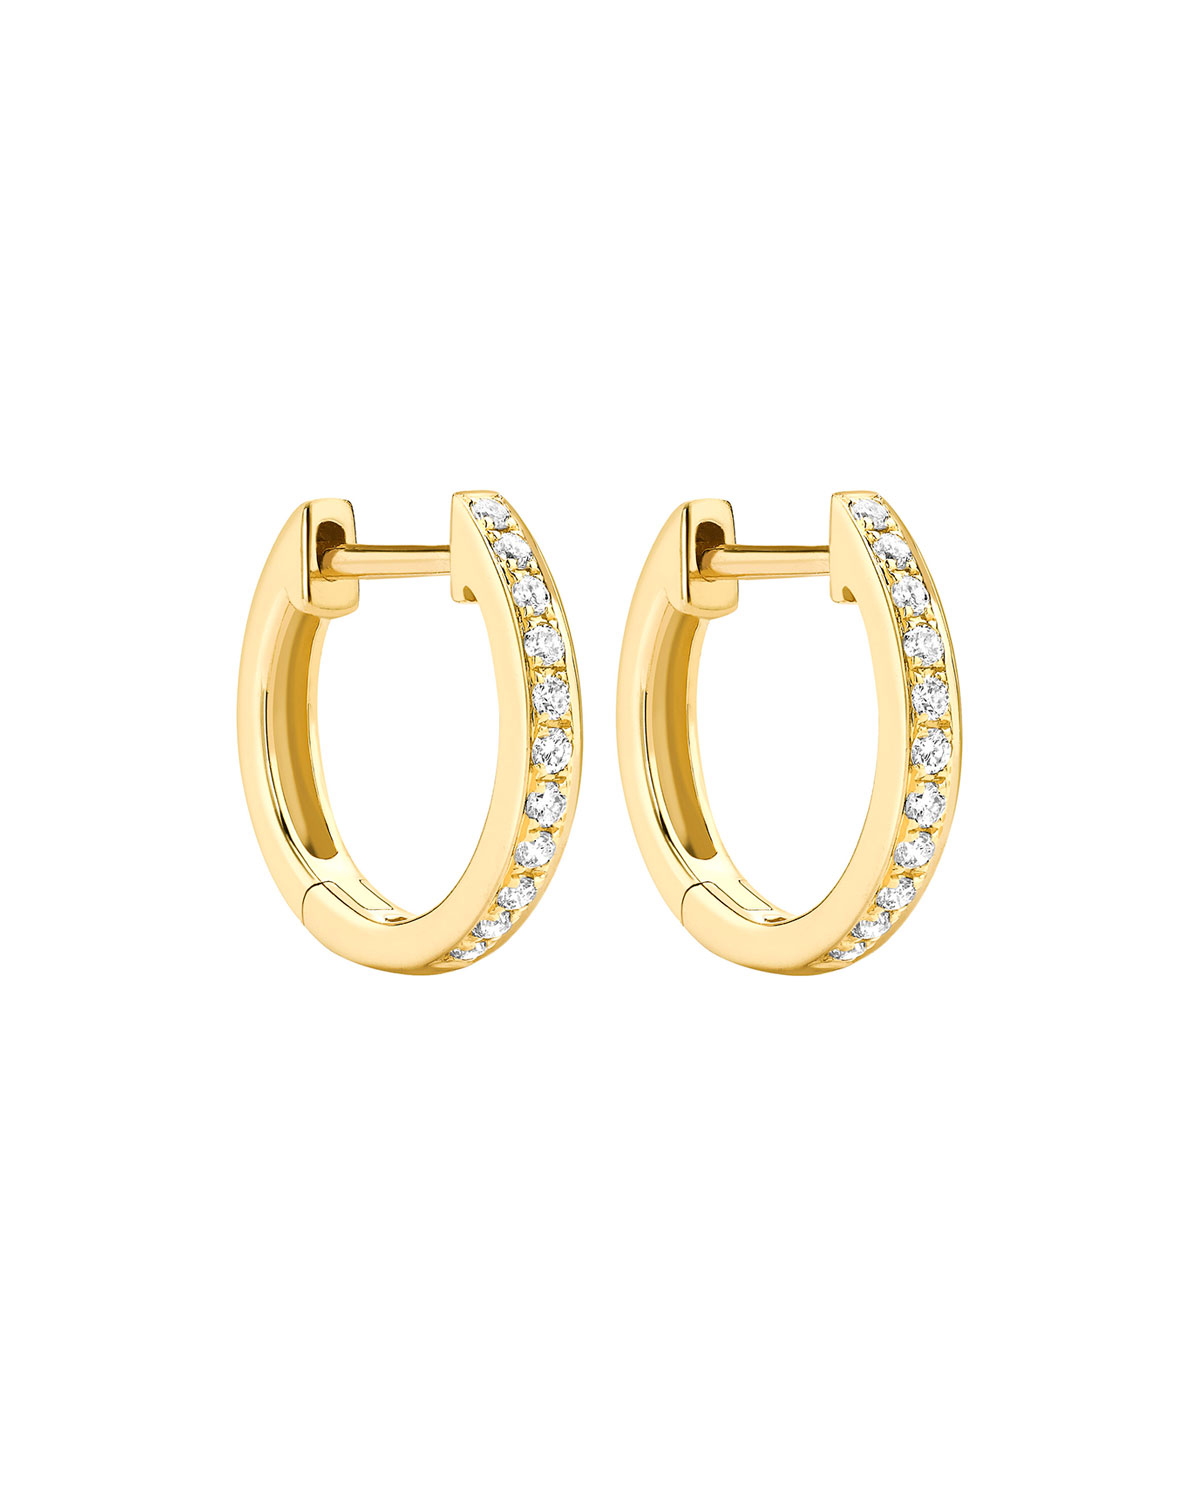 Kiki McDonough Yellow Gold Diamond Hoop Earrings-Kate Middleton